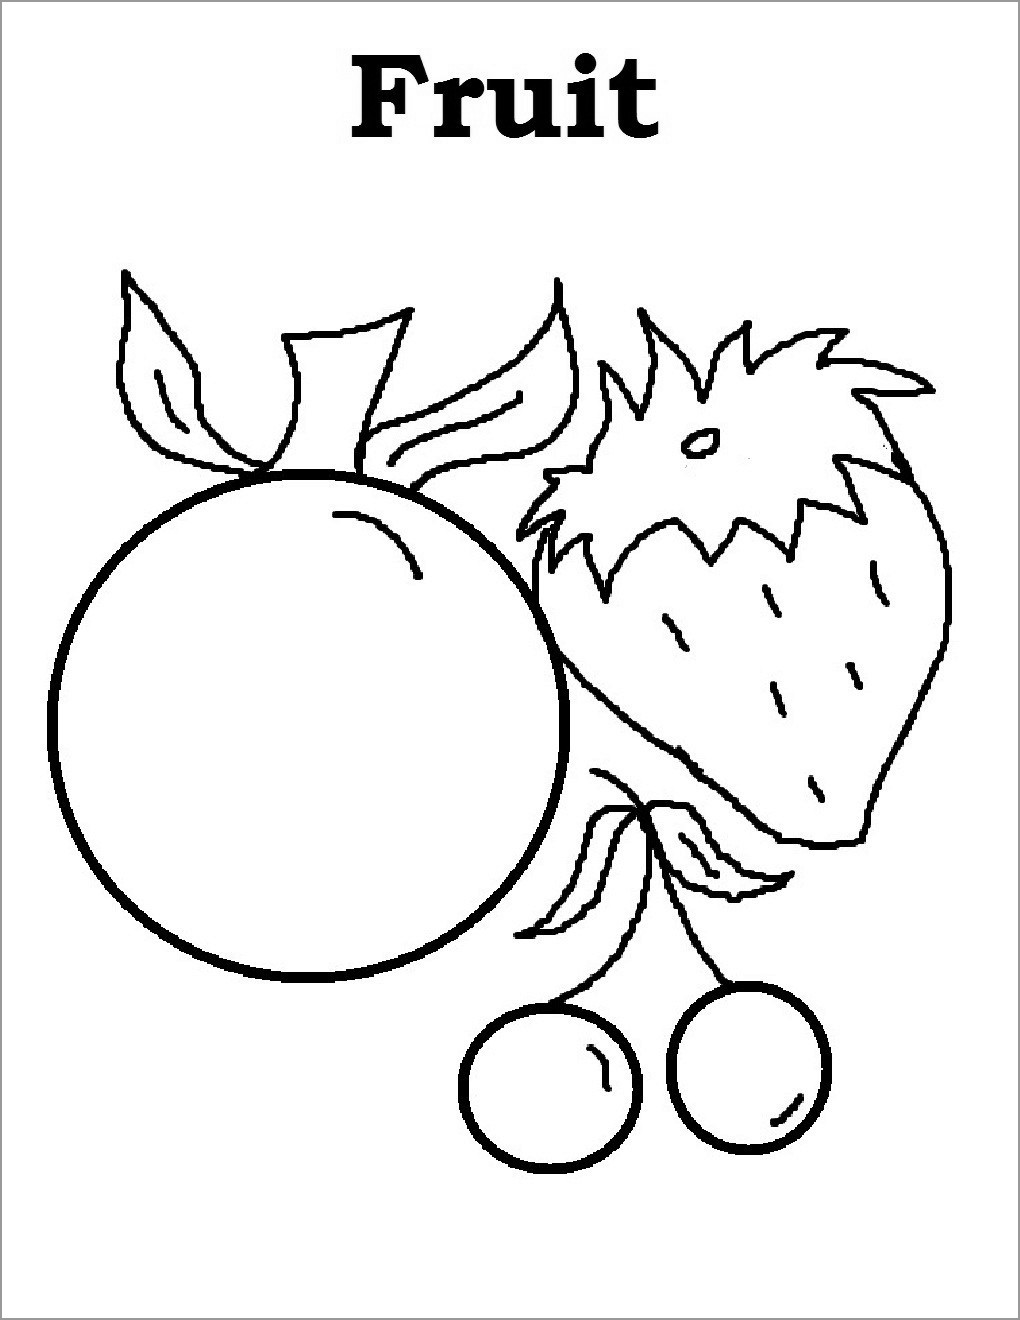 Autumn Fruits Coloring Pages